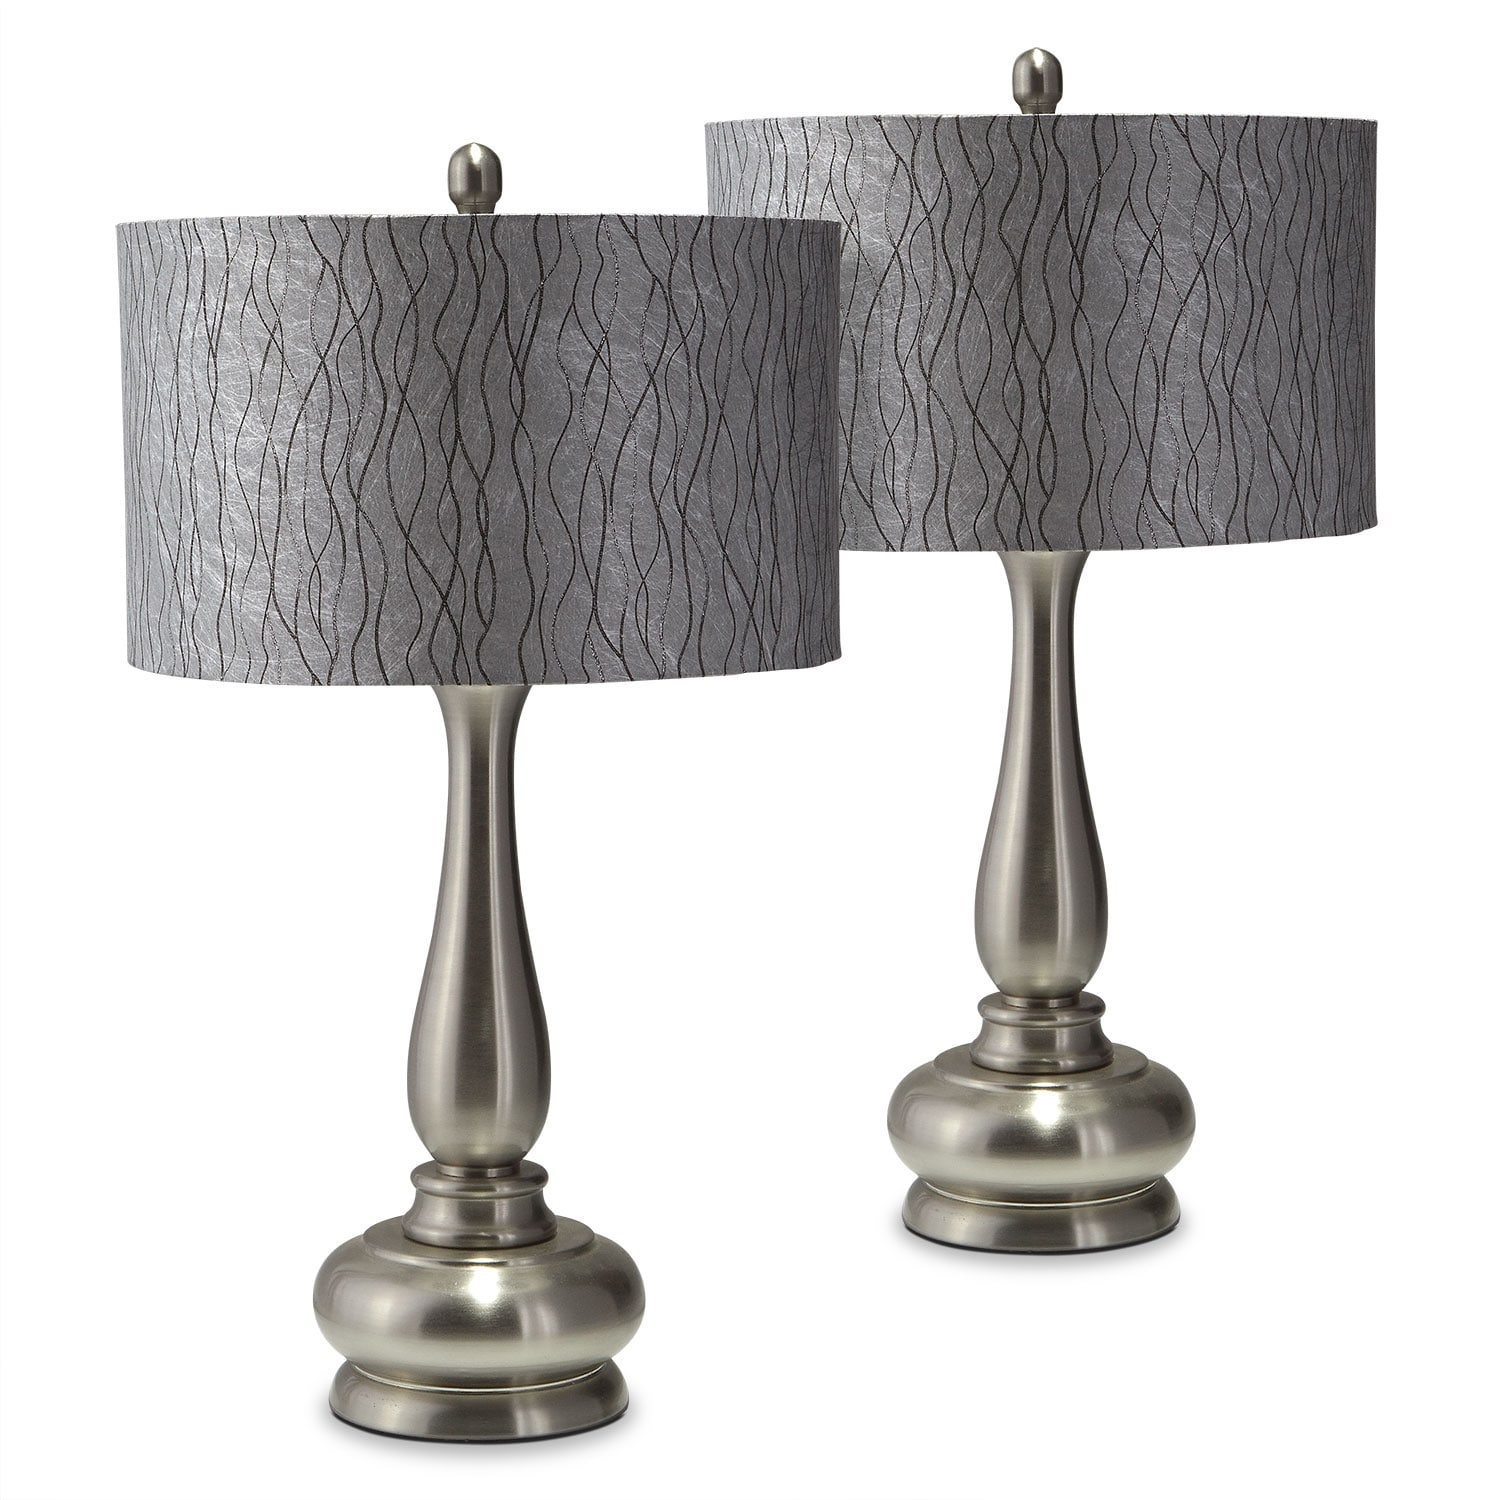 Home Accessories - Metal Silver 2-Pack Table Lamp Set